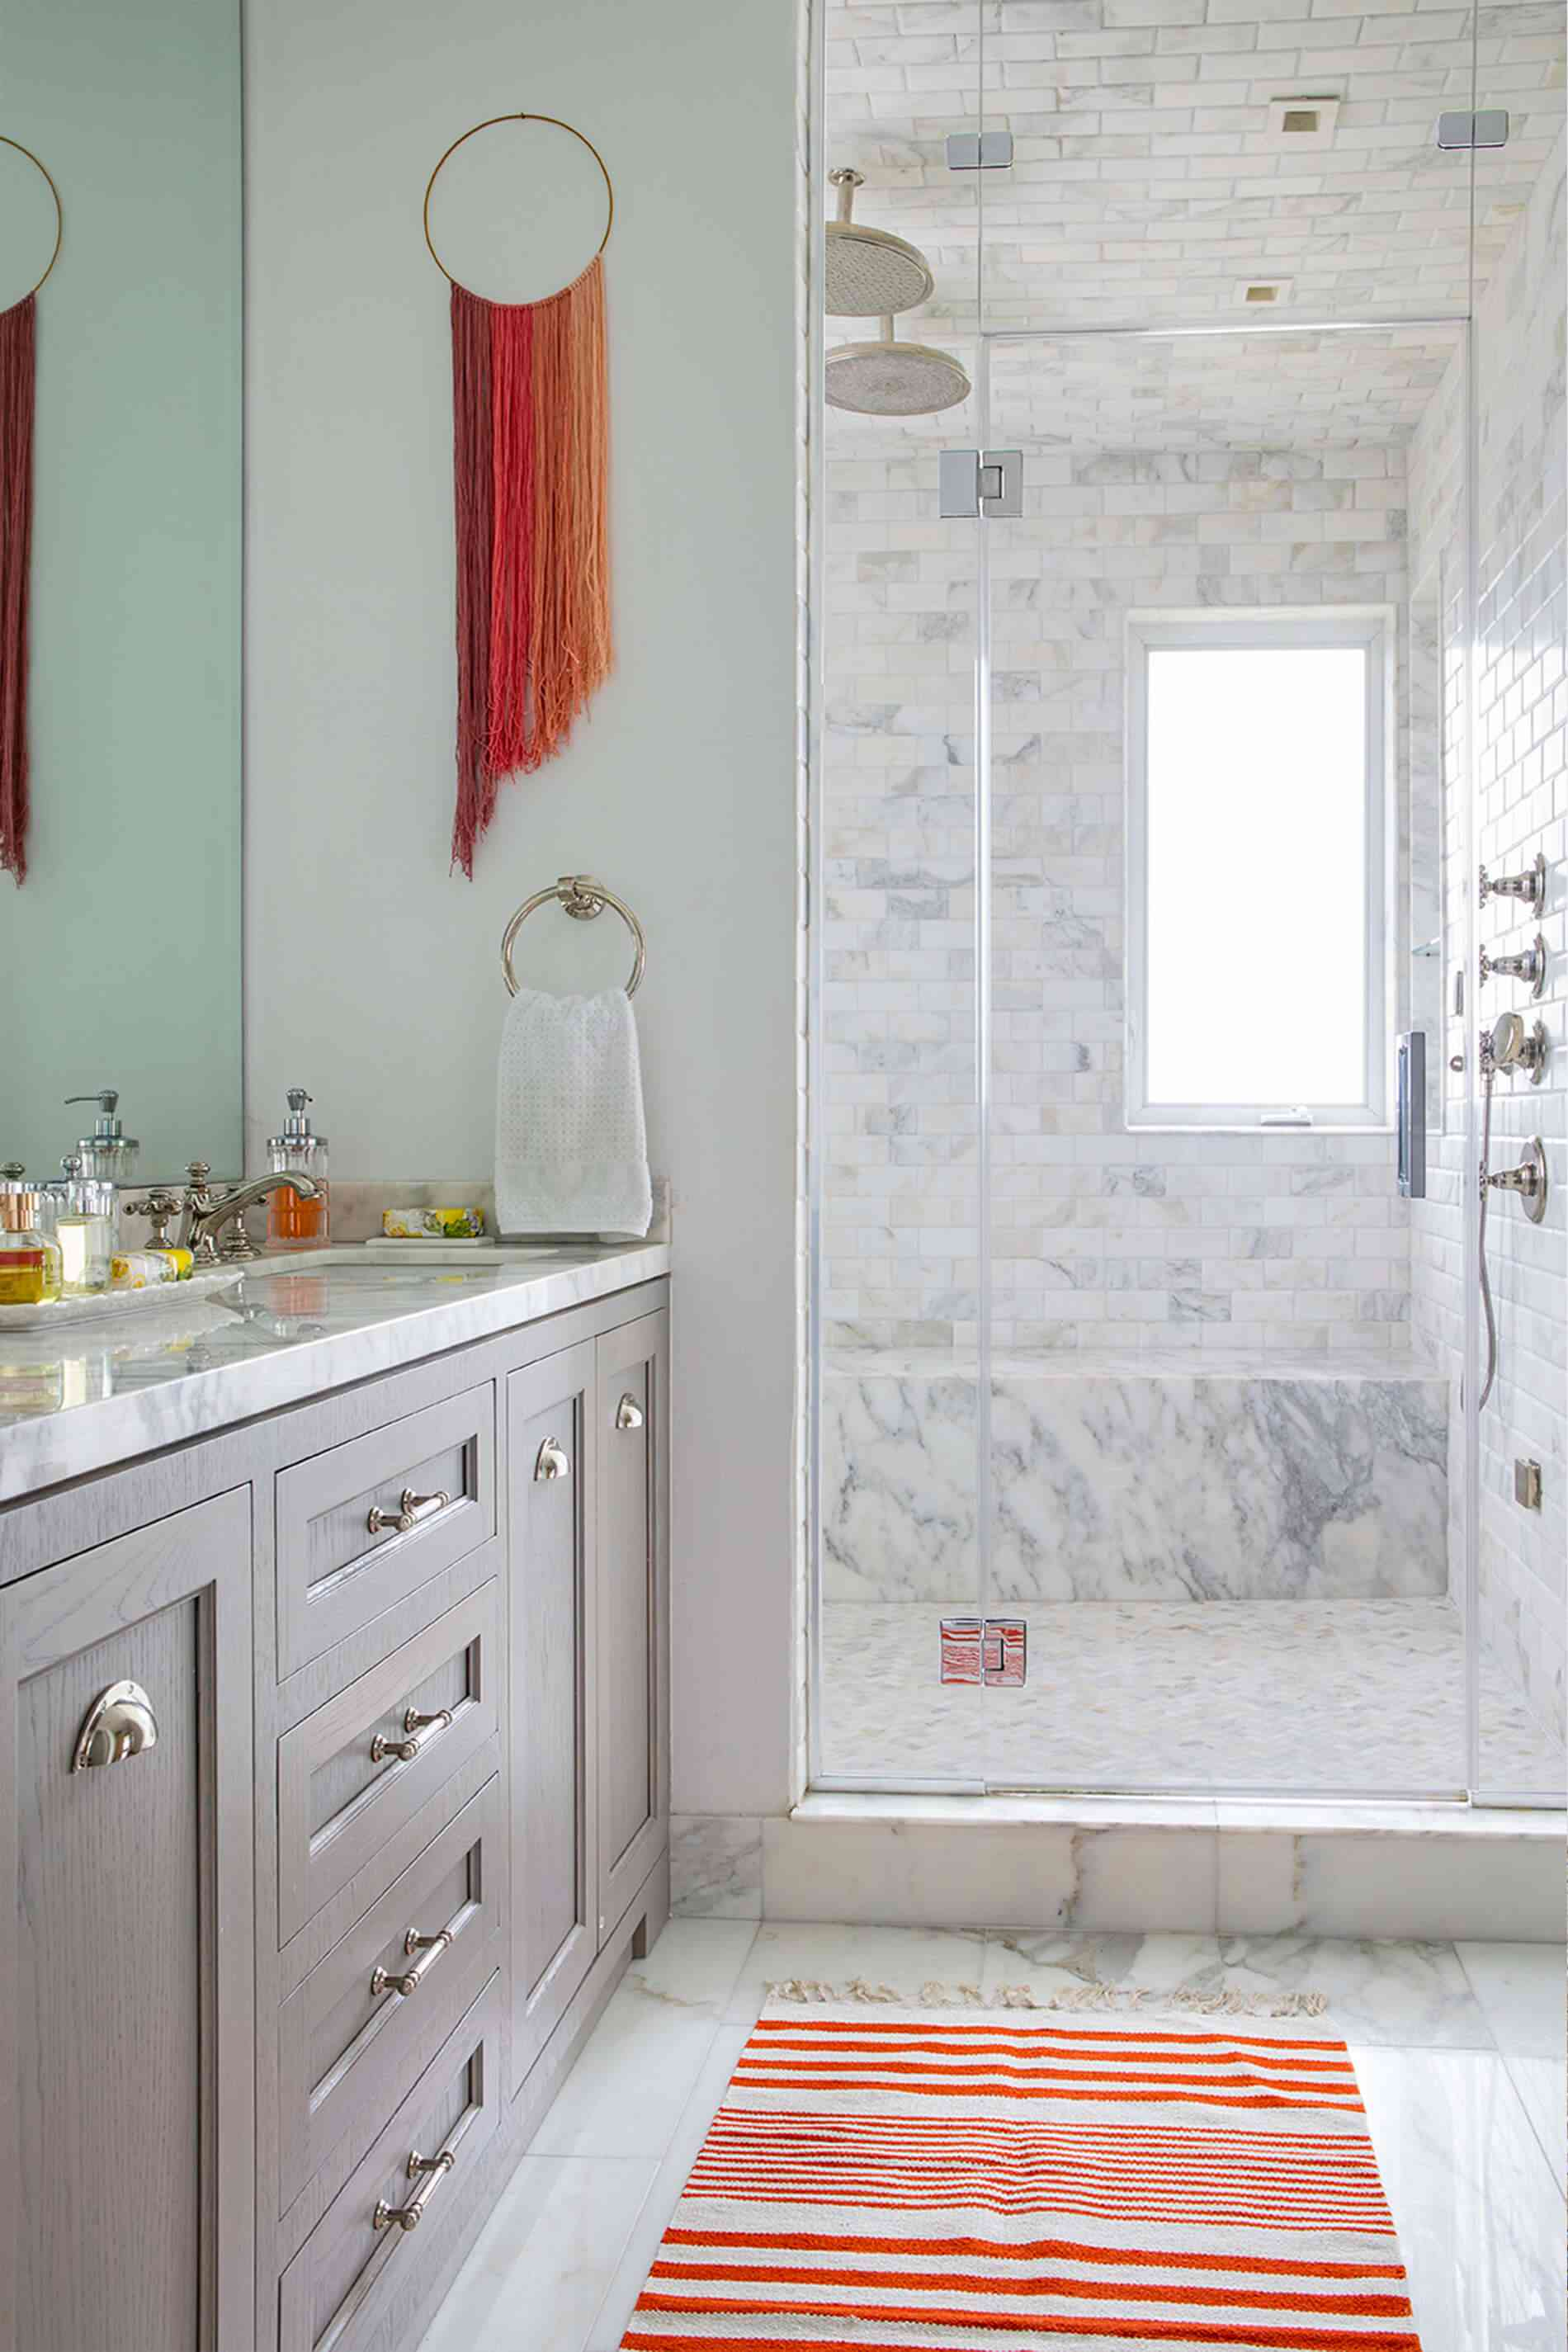 Modern bathroom with red accents